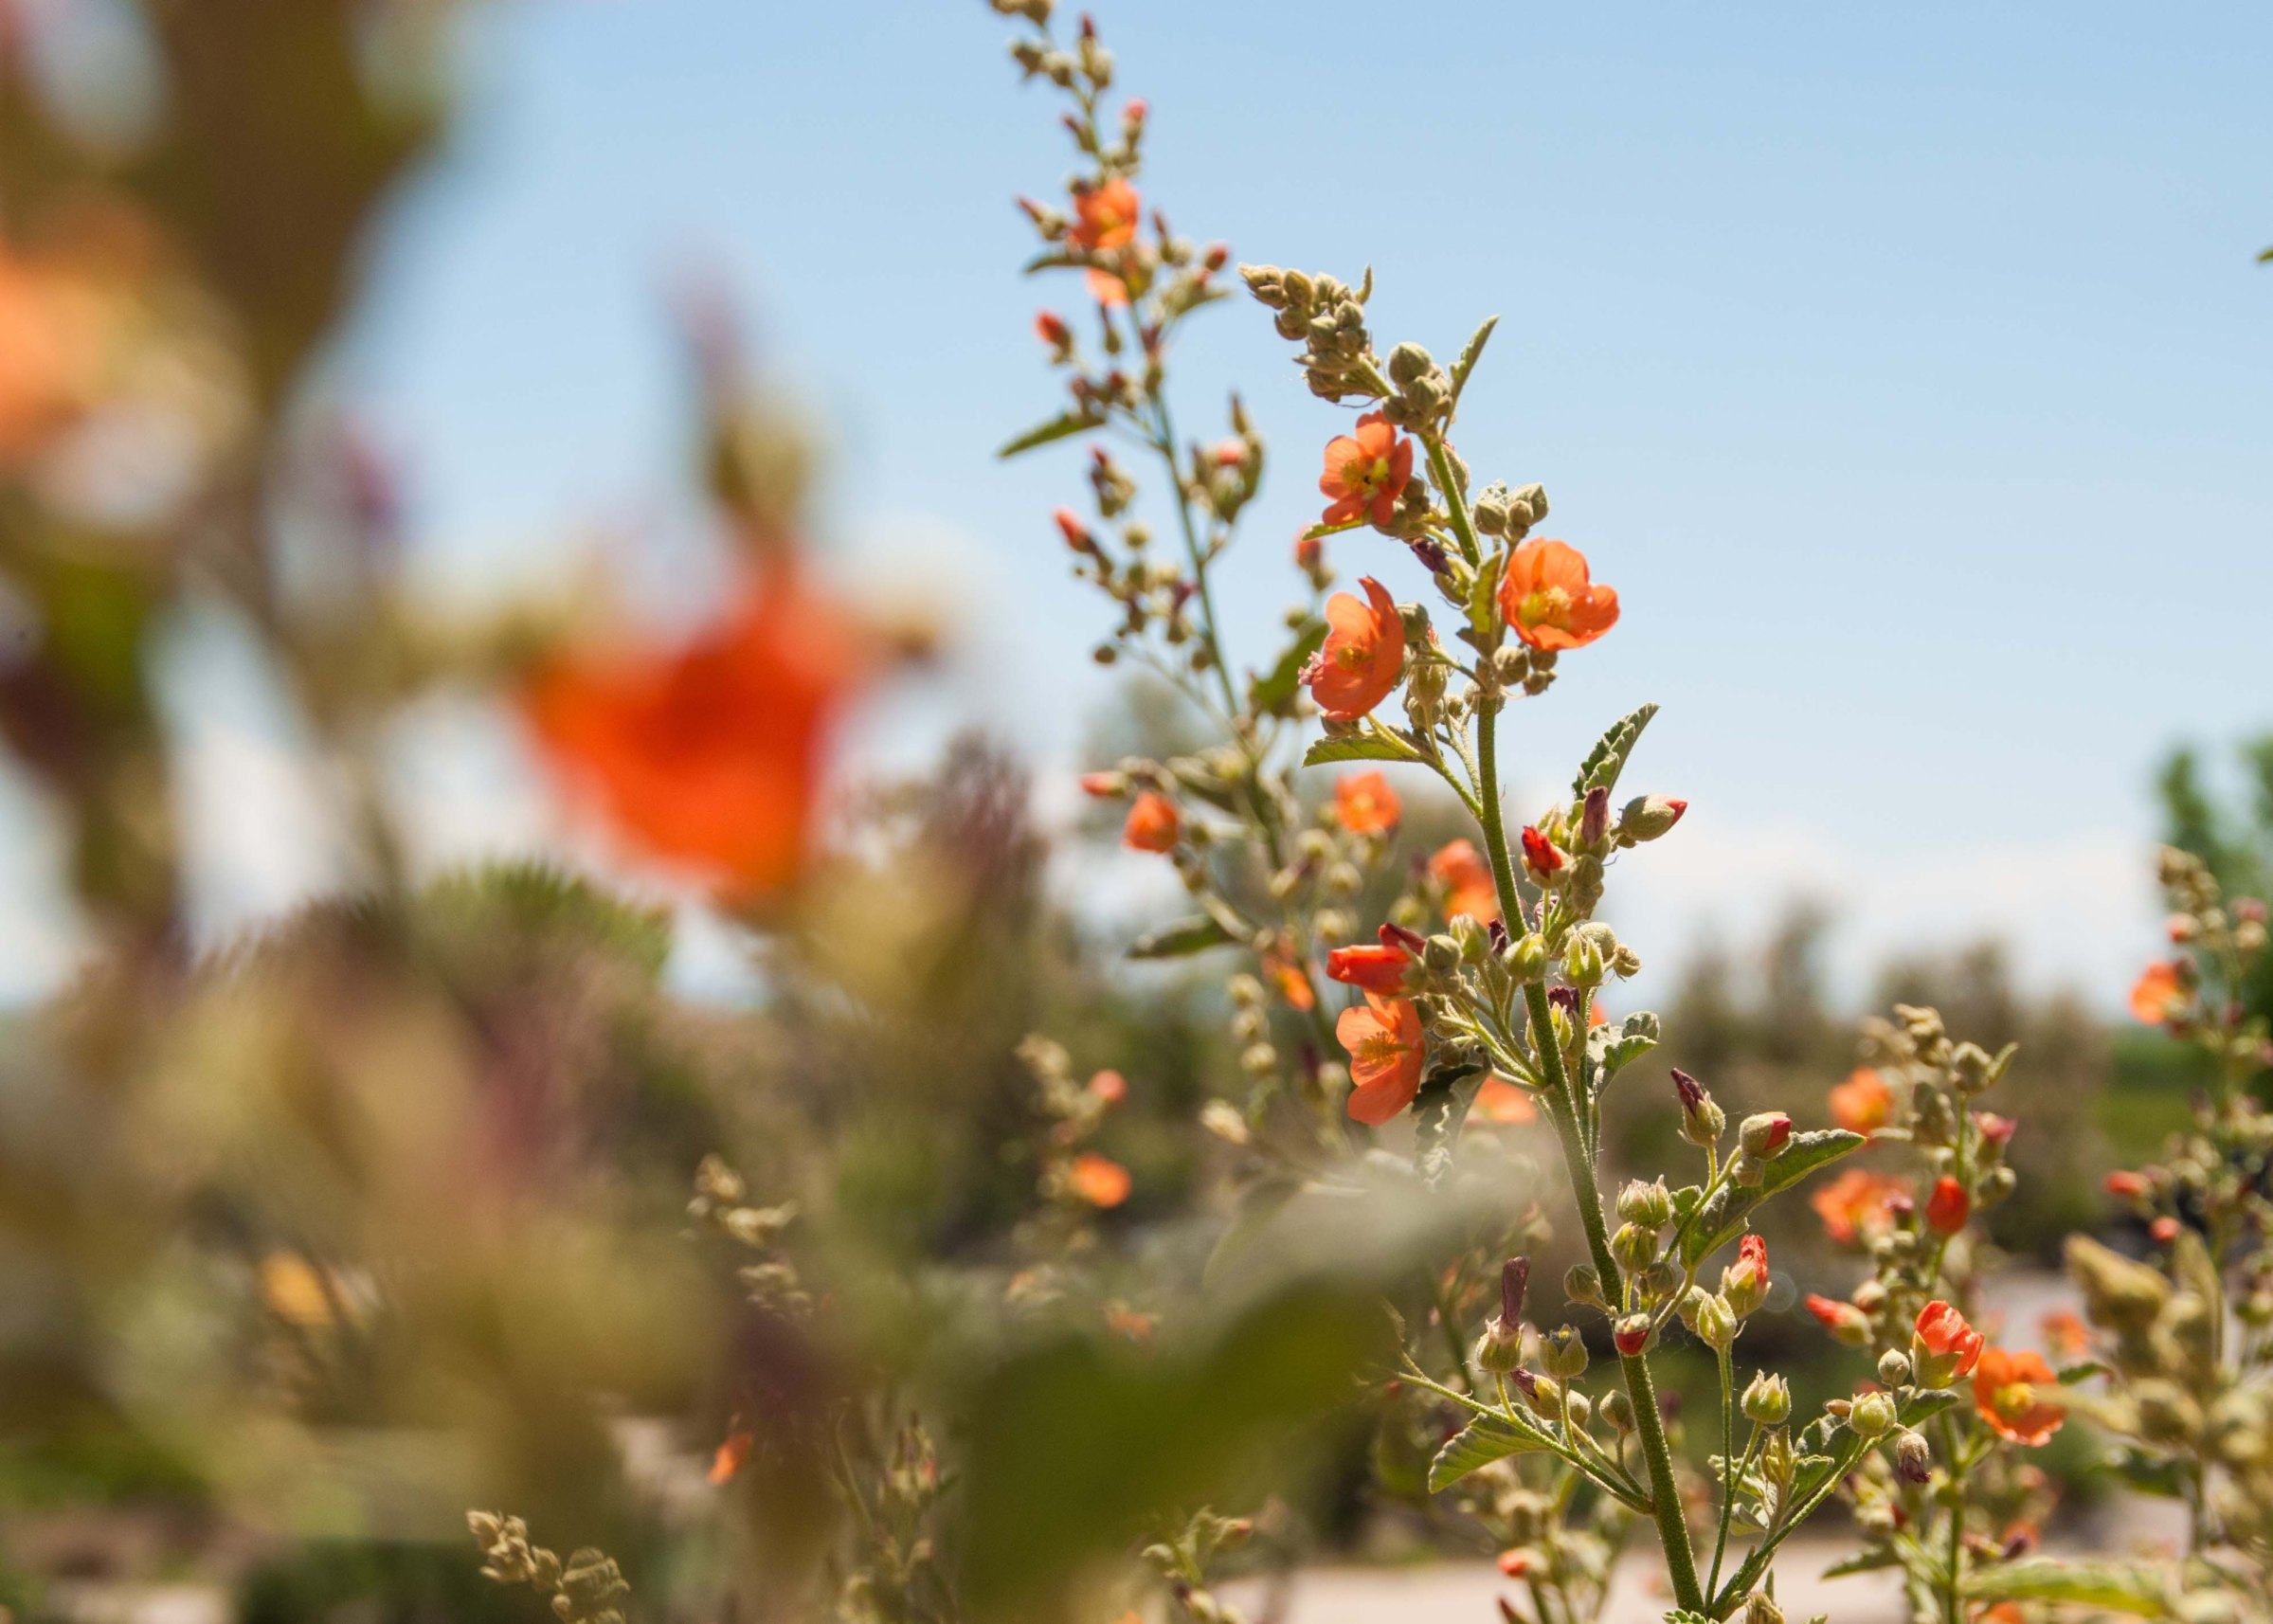 These beautiful flowers attracted many pollinators out in the New Mexico desert!